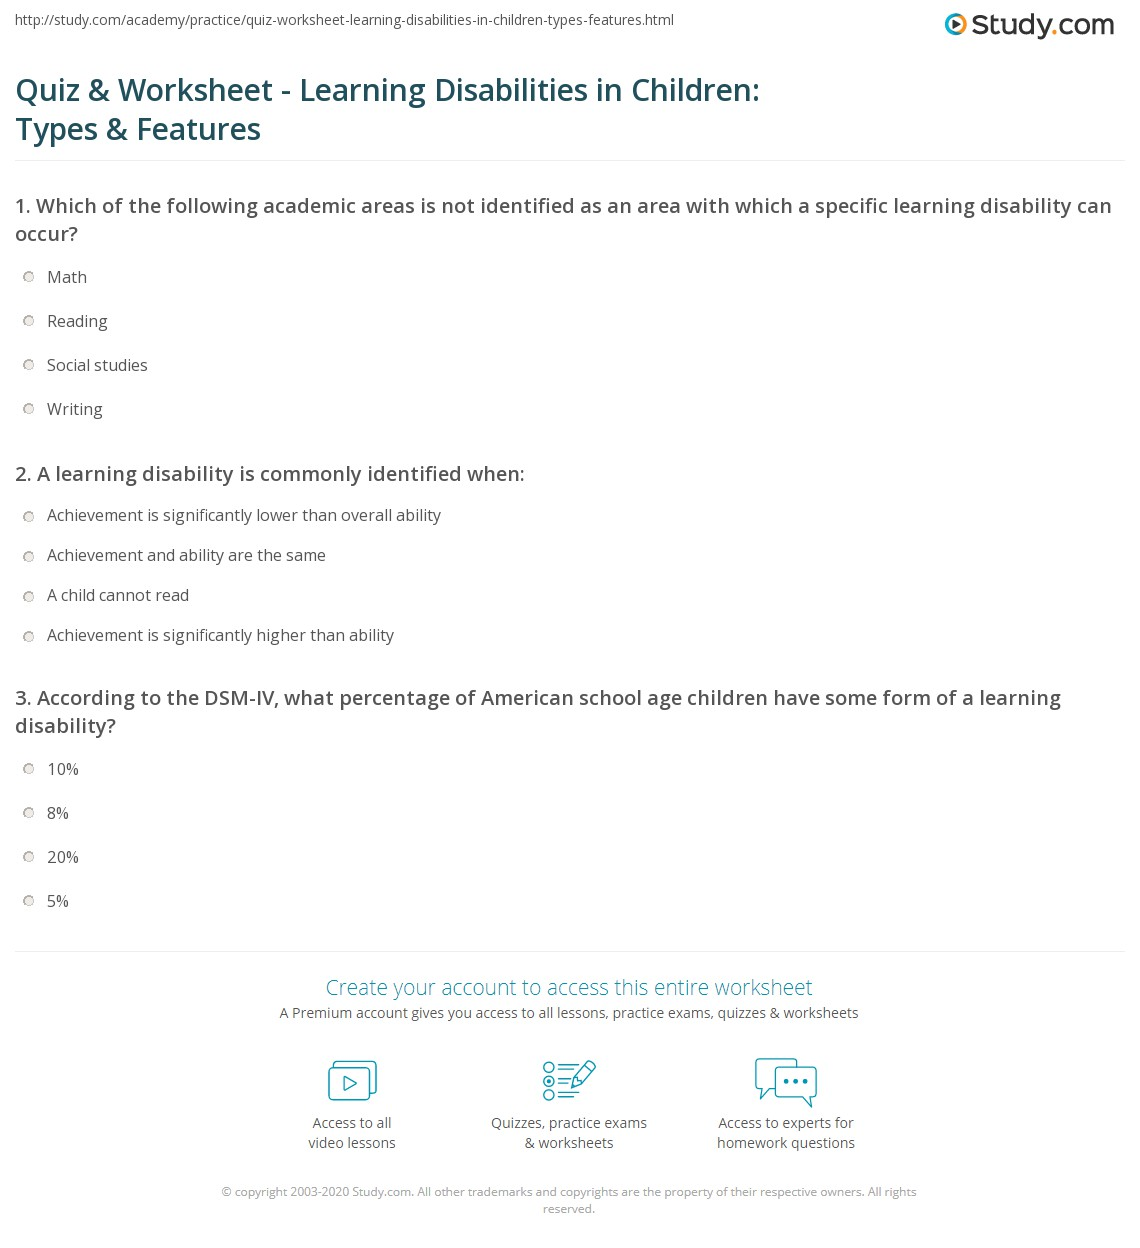 quiz & worksheet - learning disabilities in children: types